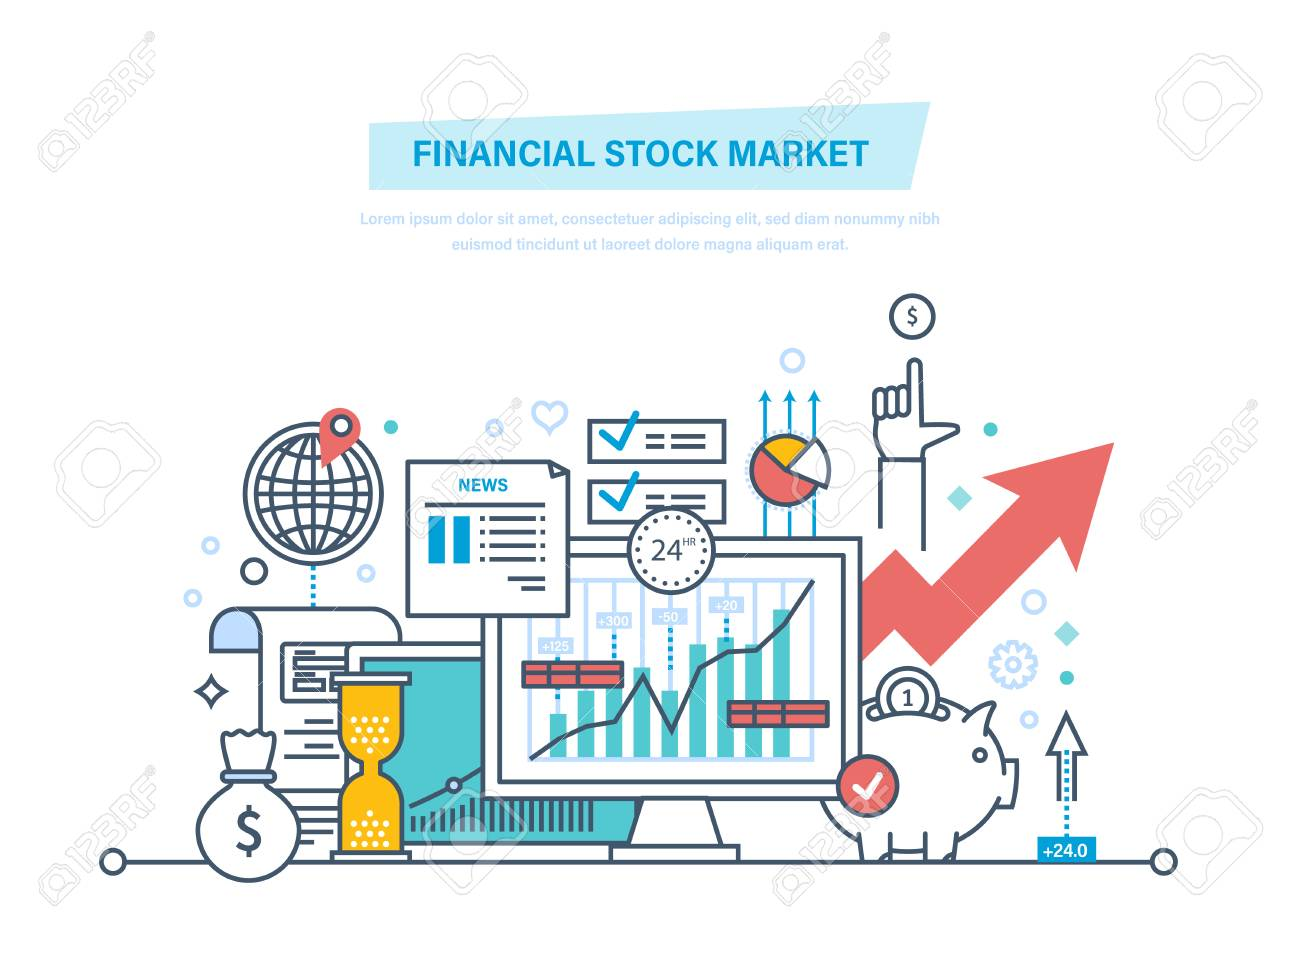 Financial stock market. Capital markets, trading, e-commerce, investments, finance. - 88844440